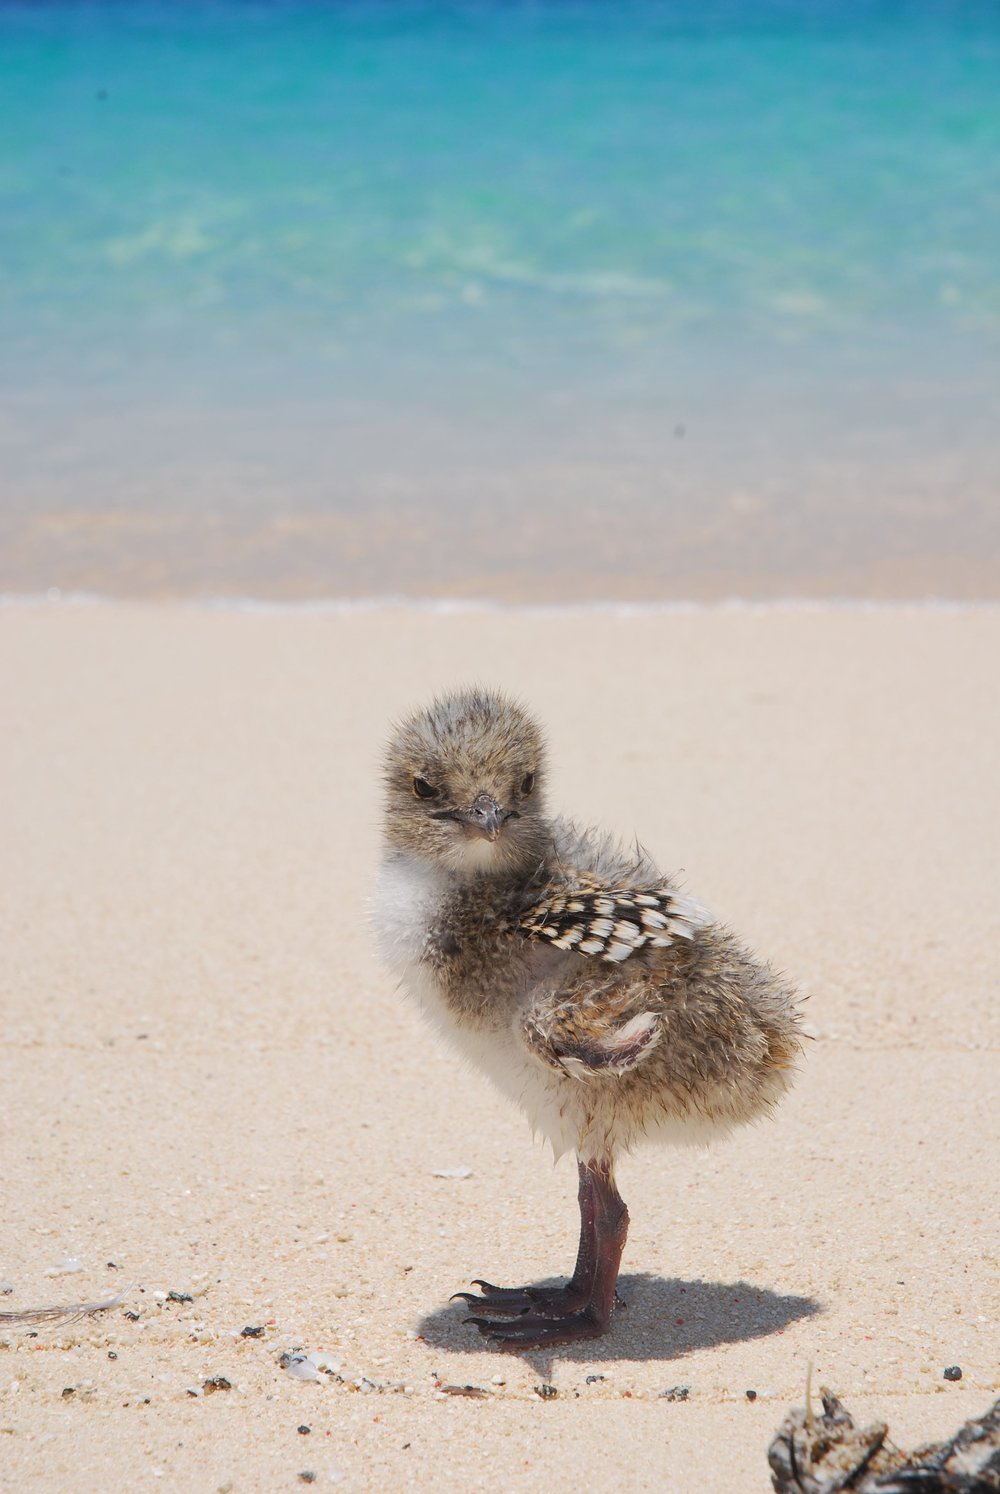 Michaelmas_Cay_chick_bird_life のコピー.jpg